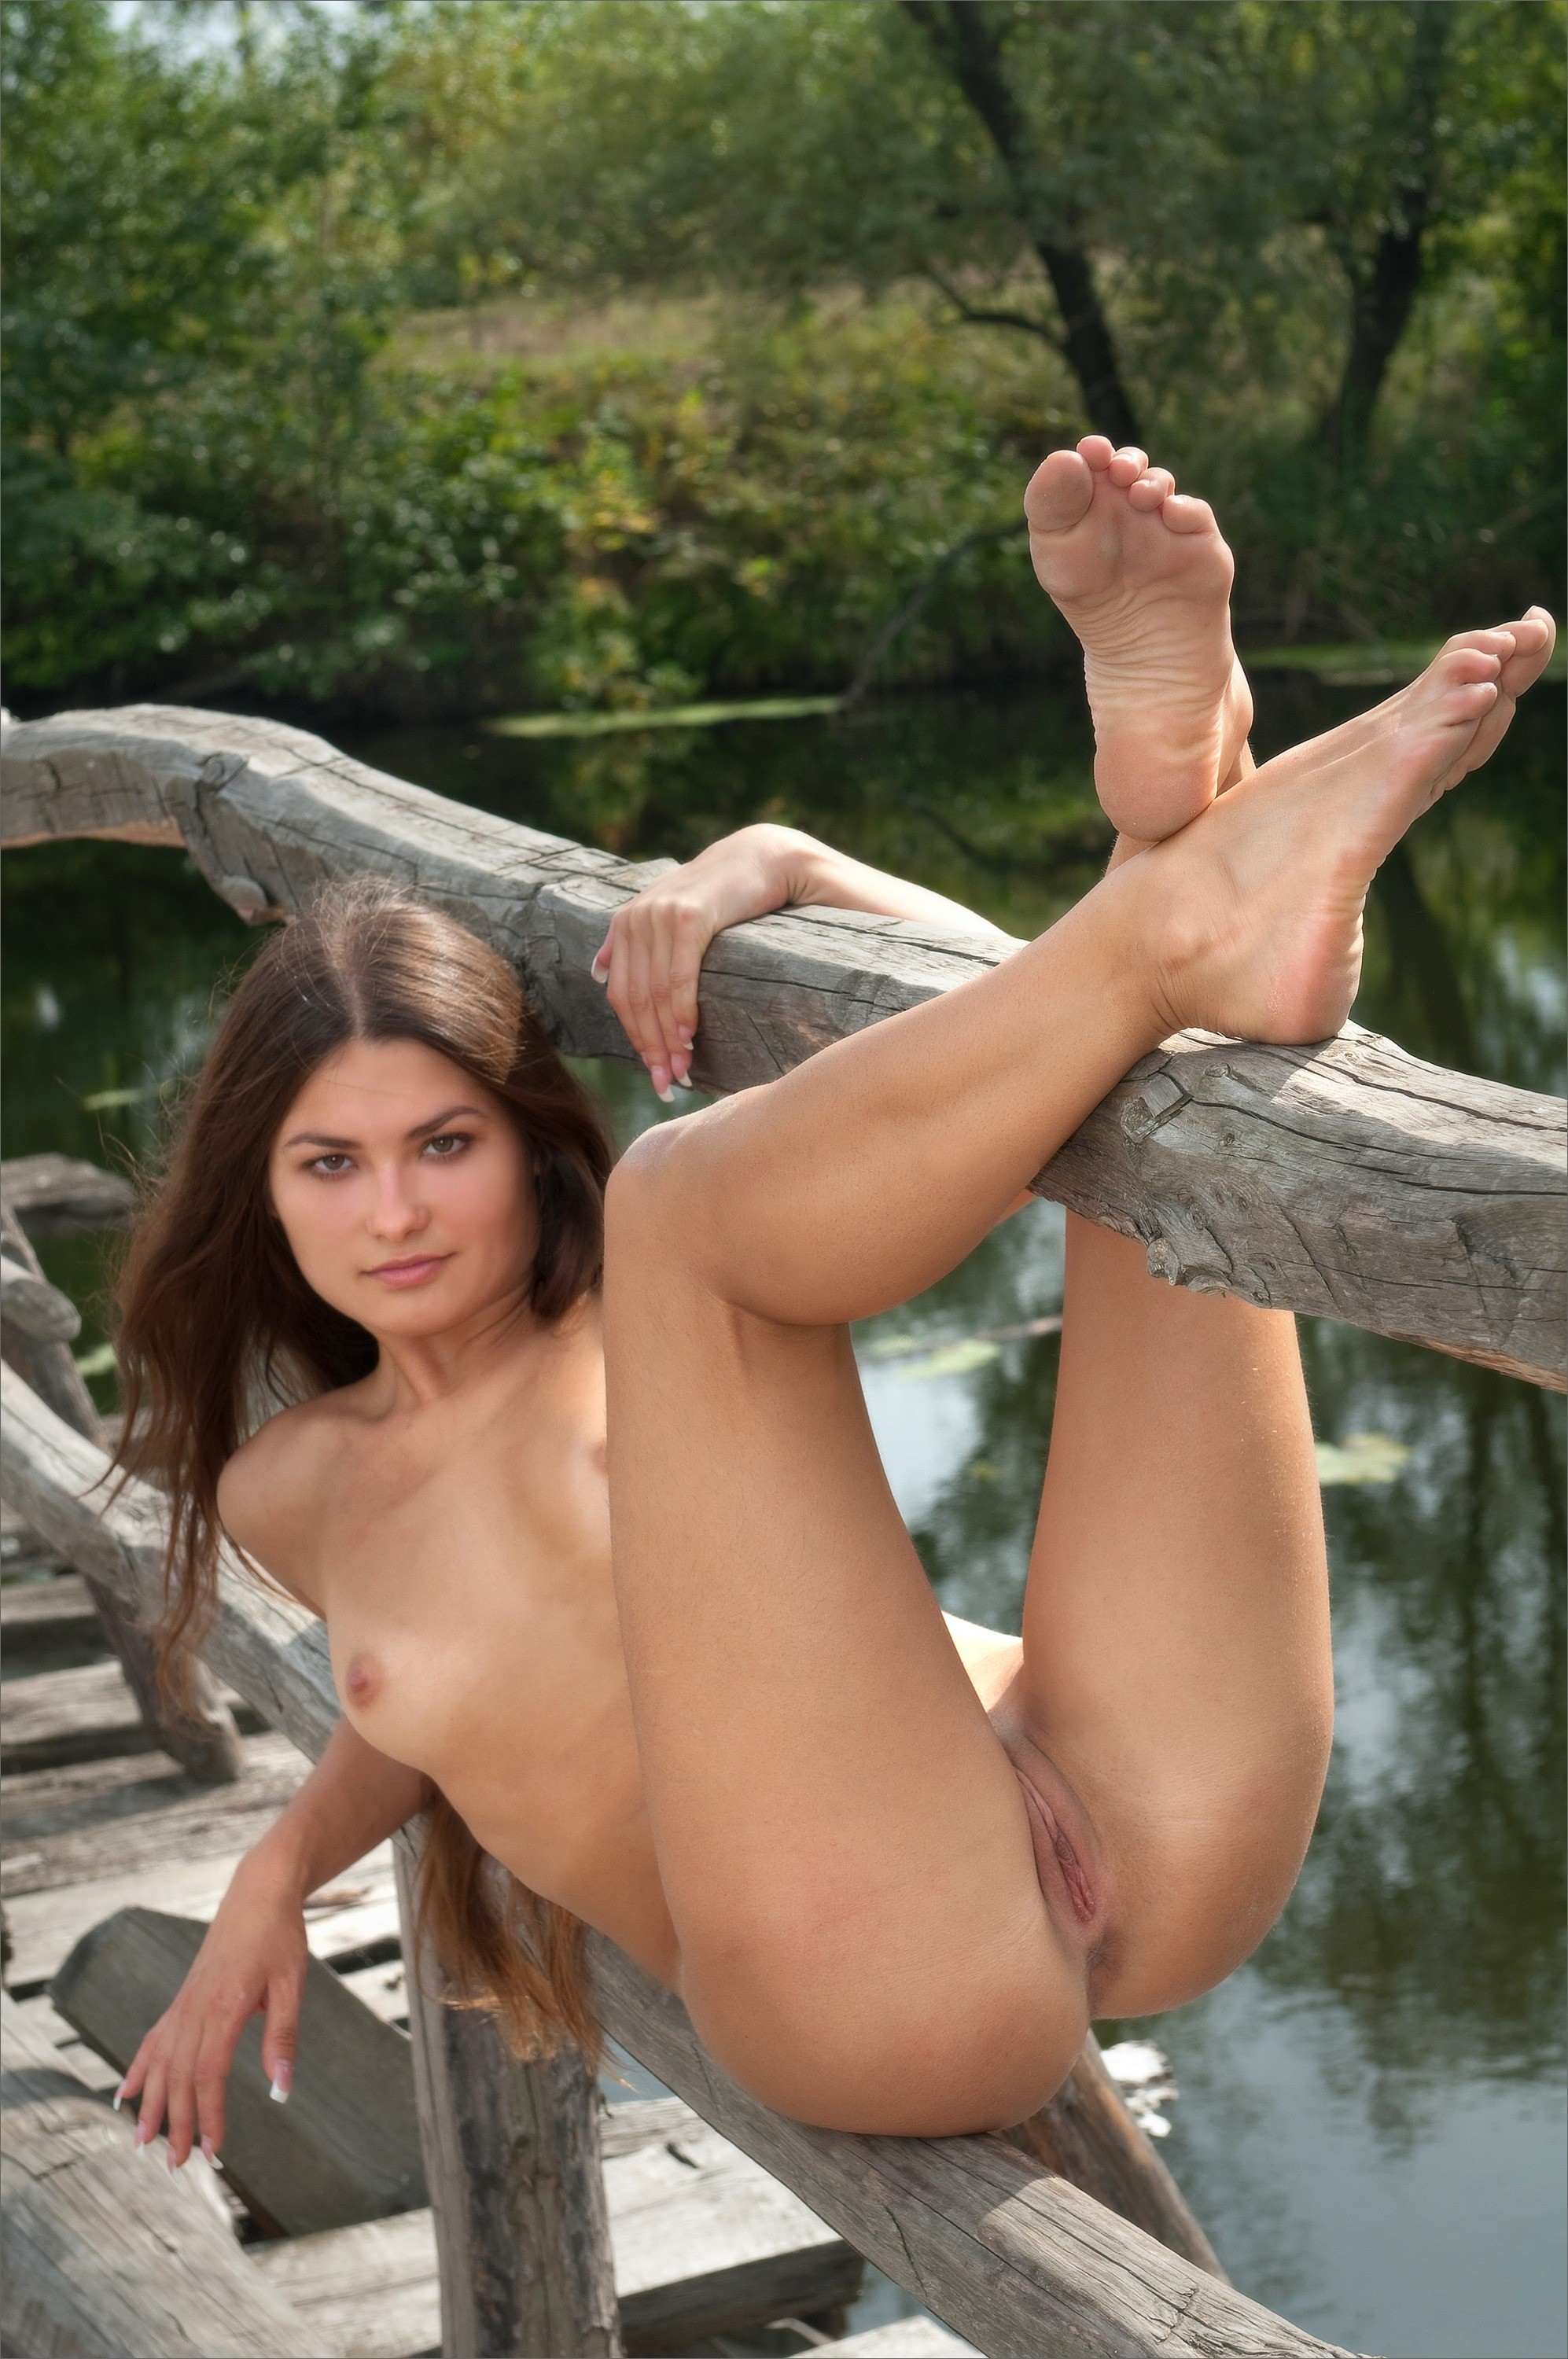 Nude Beauty With Long Legs And Super Tight Body Is Hot Playing With Pussy